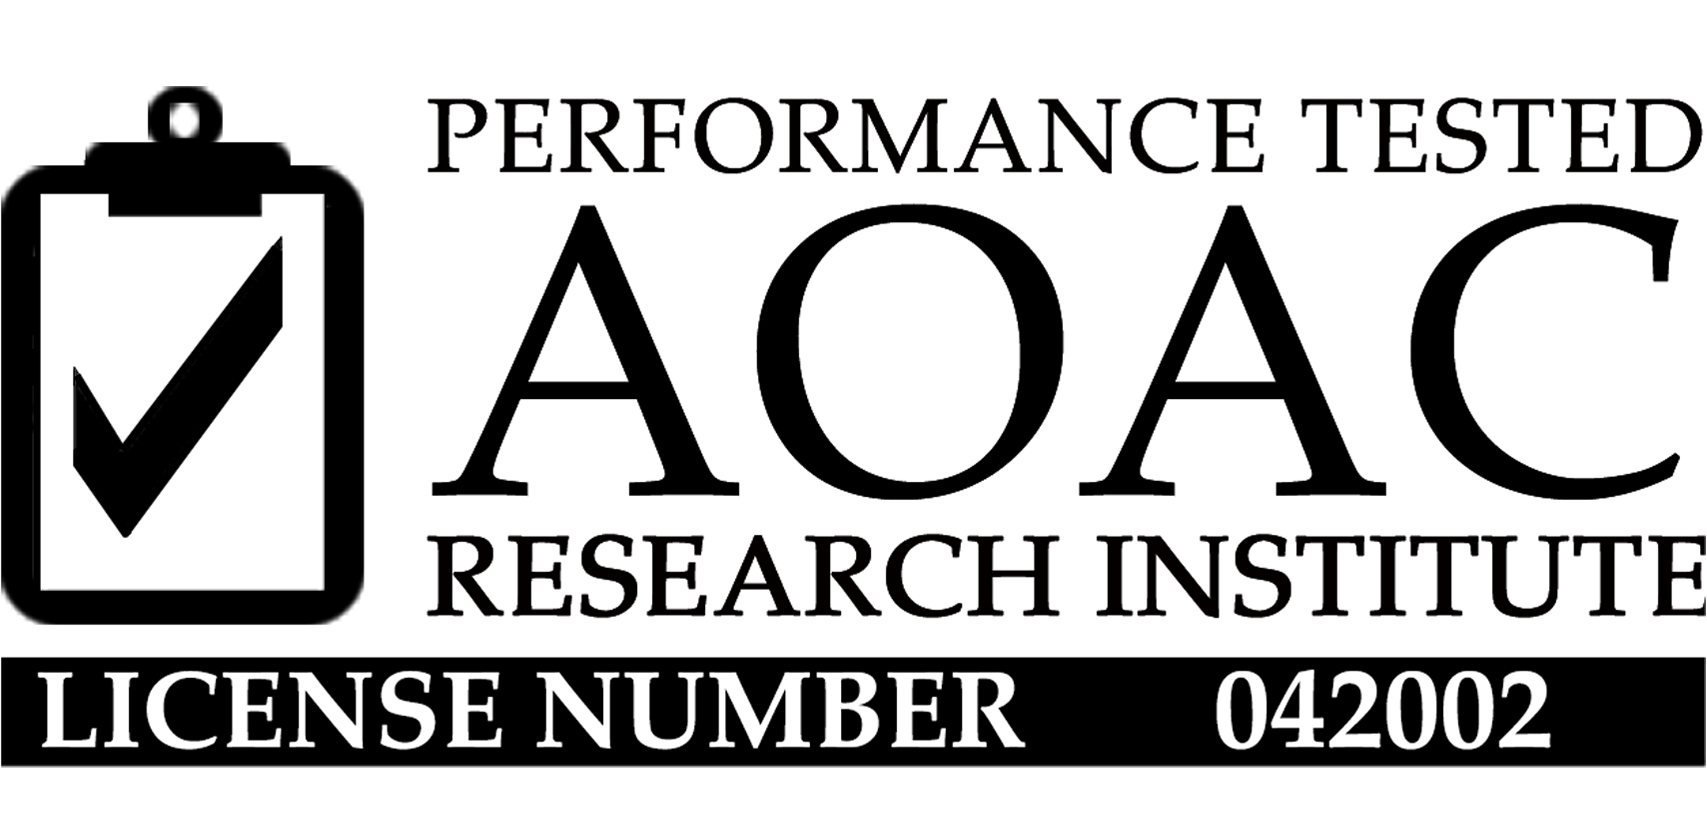 Performance Tested AOAC Research Institute, License Number 042002, Salmonella Assay